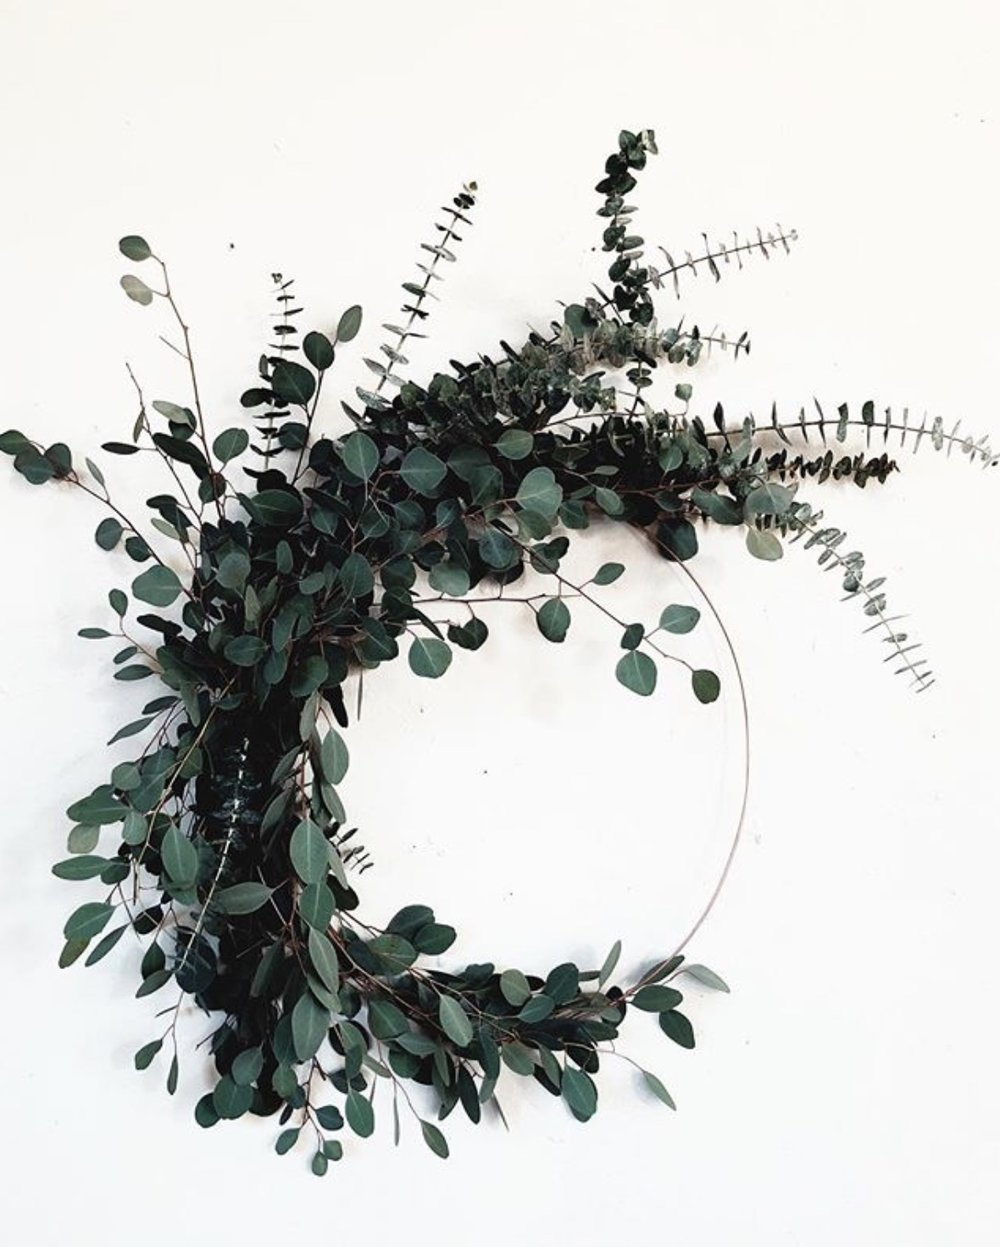 Ampersand - The darling of local bloggers for their picture-perfect space, Ampersand is always a safe bet for picking up a beautifully crafted wreath at a price point that leaves room for you to pick up a few blooms as well.